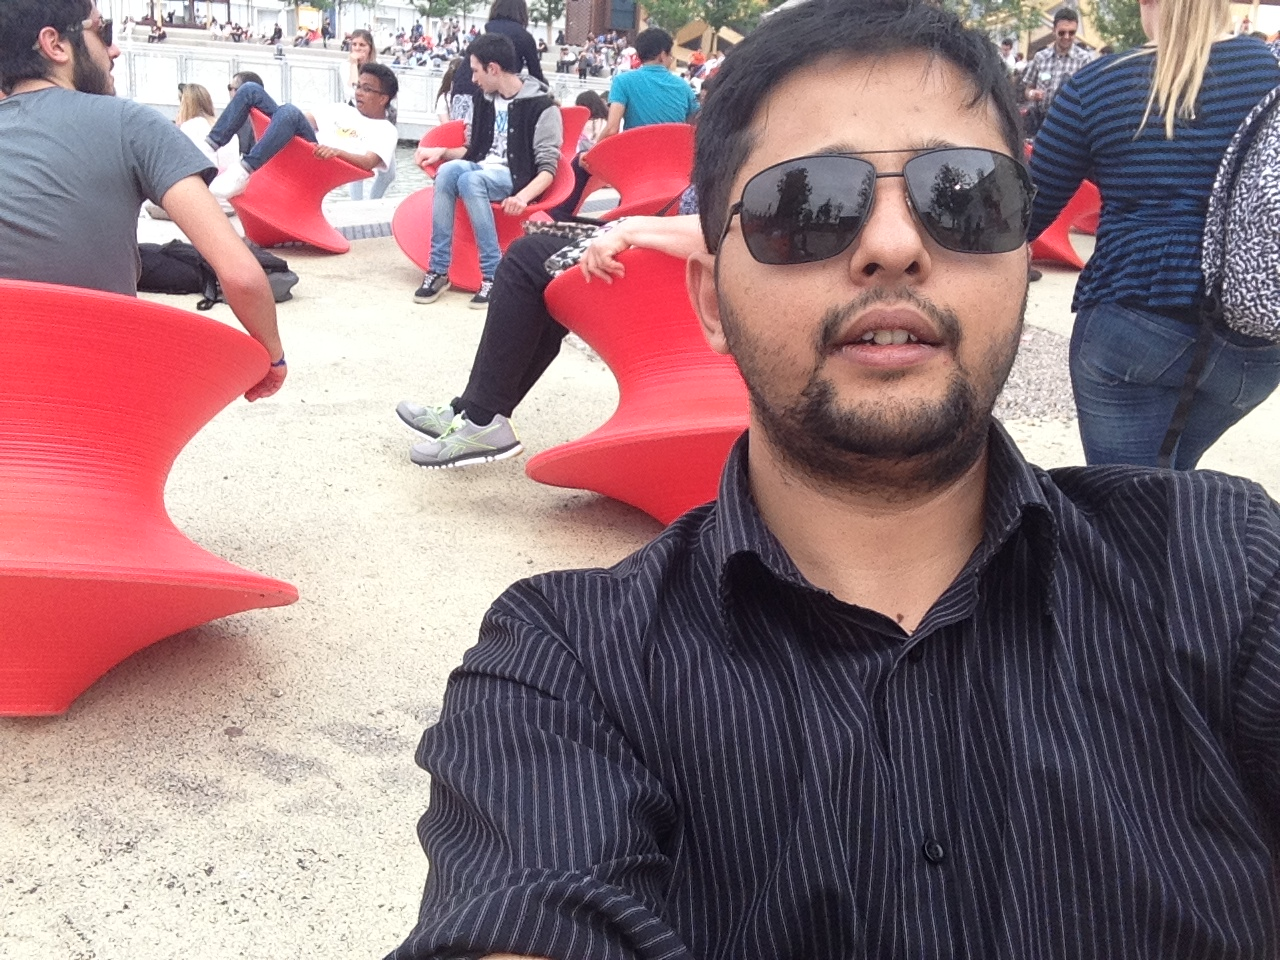 Fun chairs, Milano Expo 2015, MilanKaRaja